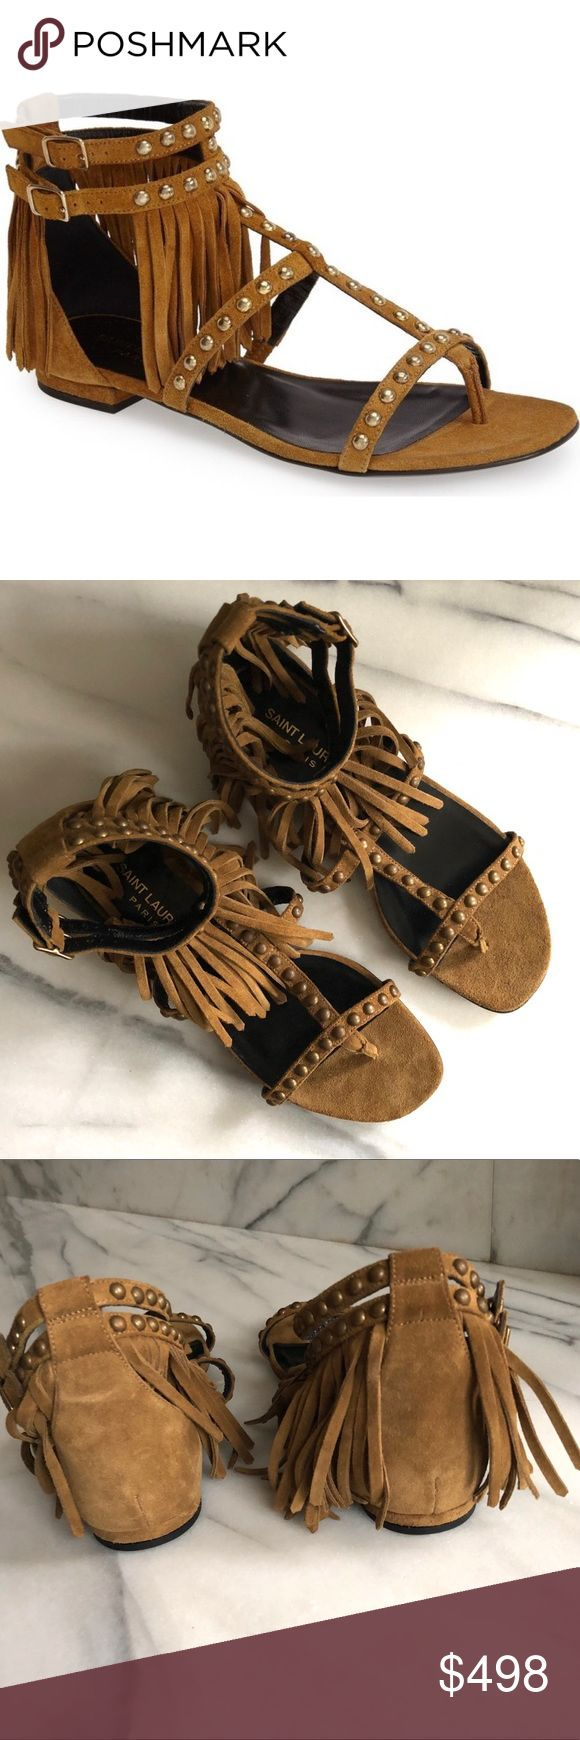 """Saint Laurent Nu Pieds Studded Fringe Sandal * Saint Laurent suede sandal with golden studding. * 0.5"""" flat heel. * Thong strap. * Caged T-strap vamp. * Double-buckle ankle straps. * Fringe hangs from upper strap. * Leather lining and sole. * Made in Italy. * Never worn. NWOT. Does not come with box or dust bag.  * No trades. Saint Laurent Shoes Sandals"""